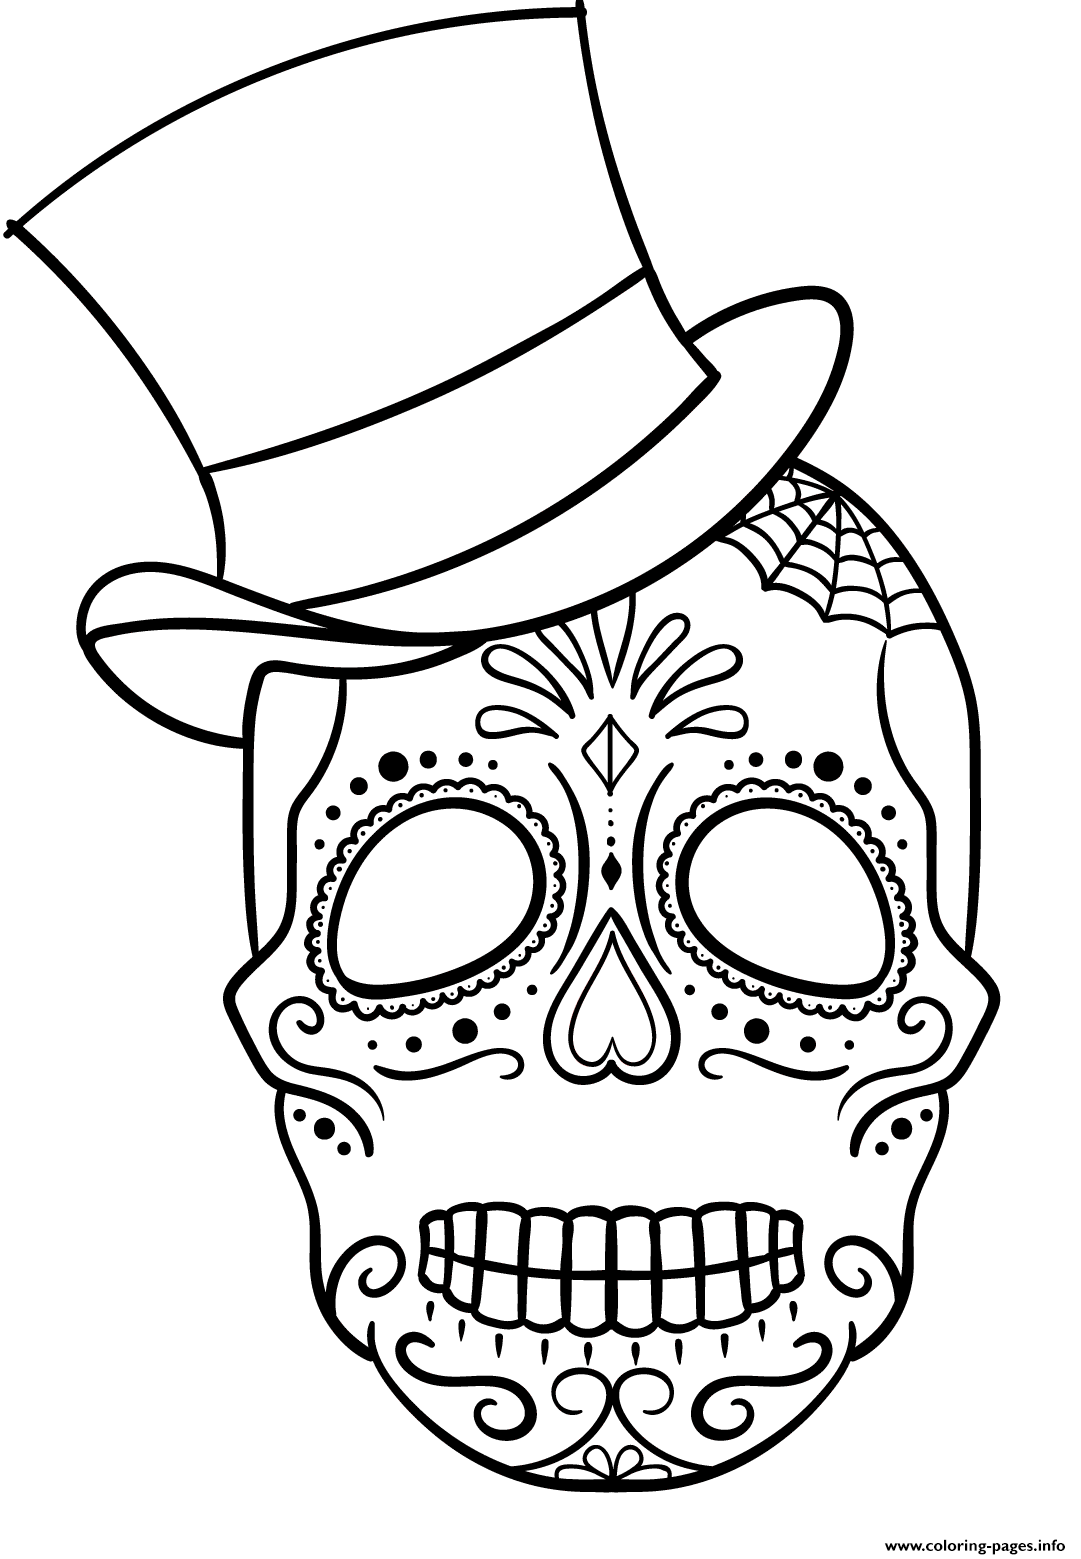 Sugar Skull With Top Hat Calavera coloring pages